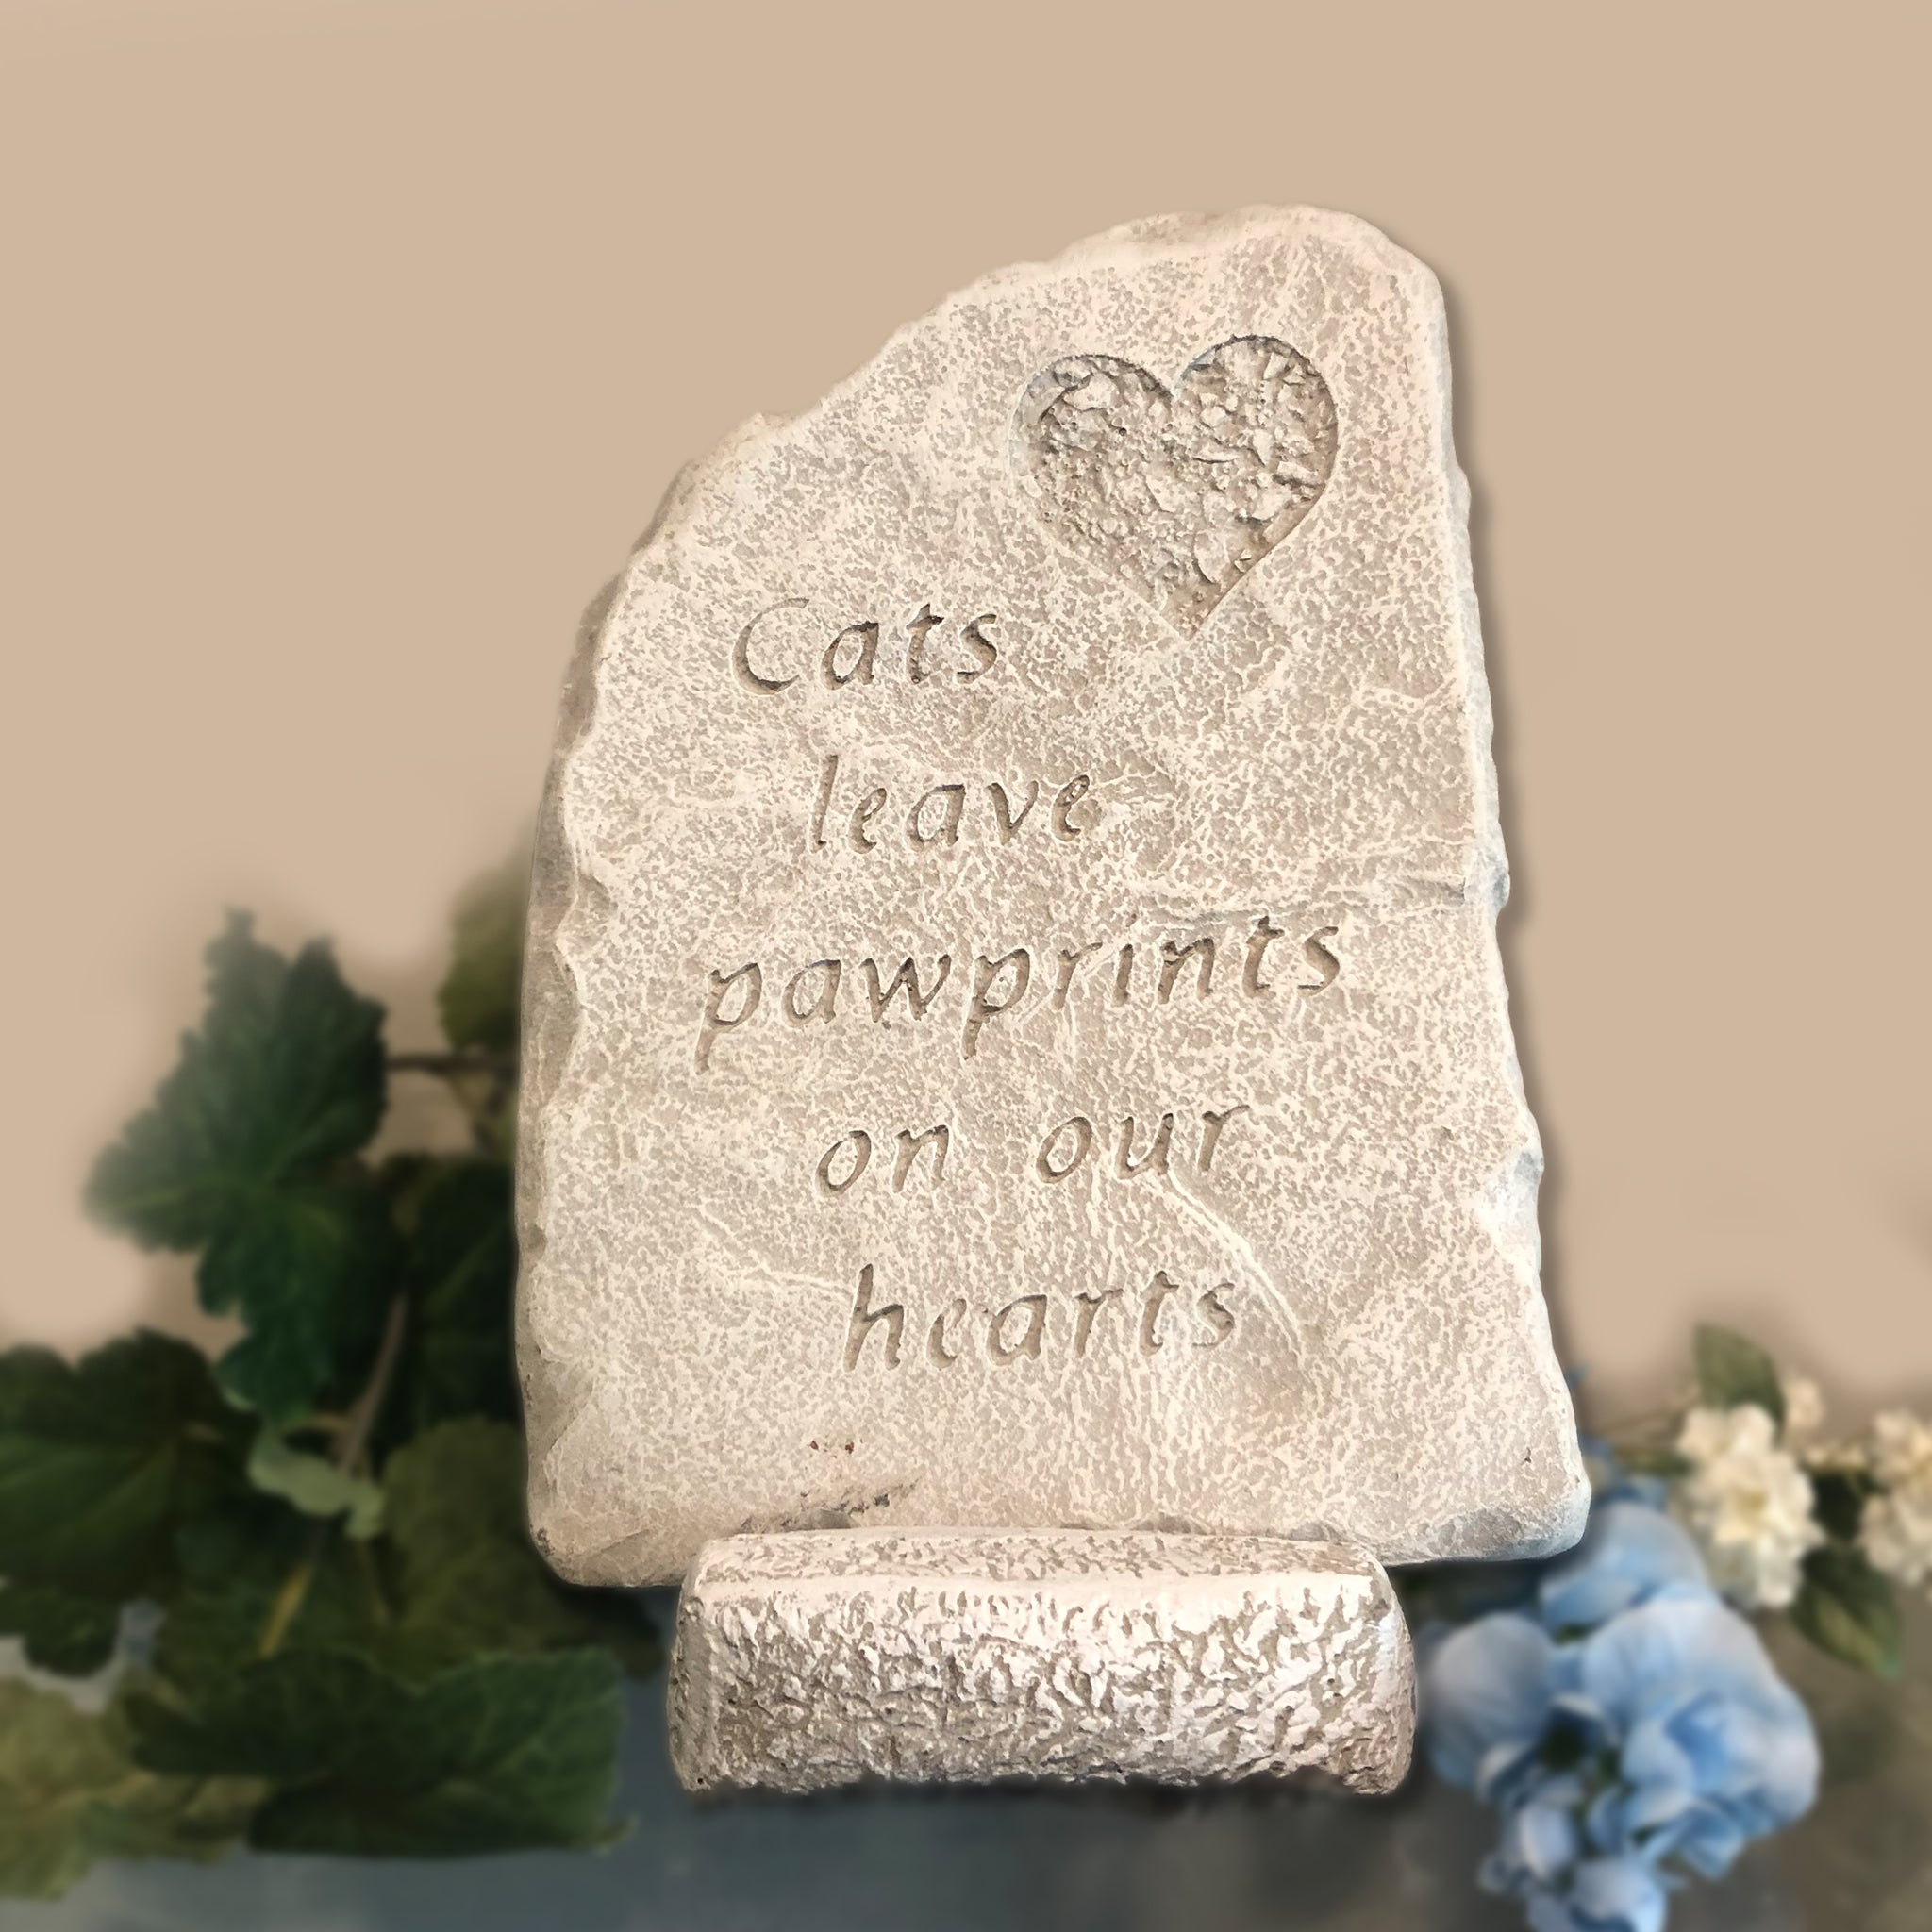 Cats Leave a Pawprint on Our Hearts Plaque